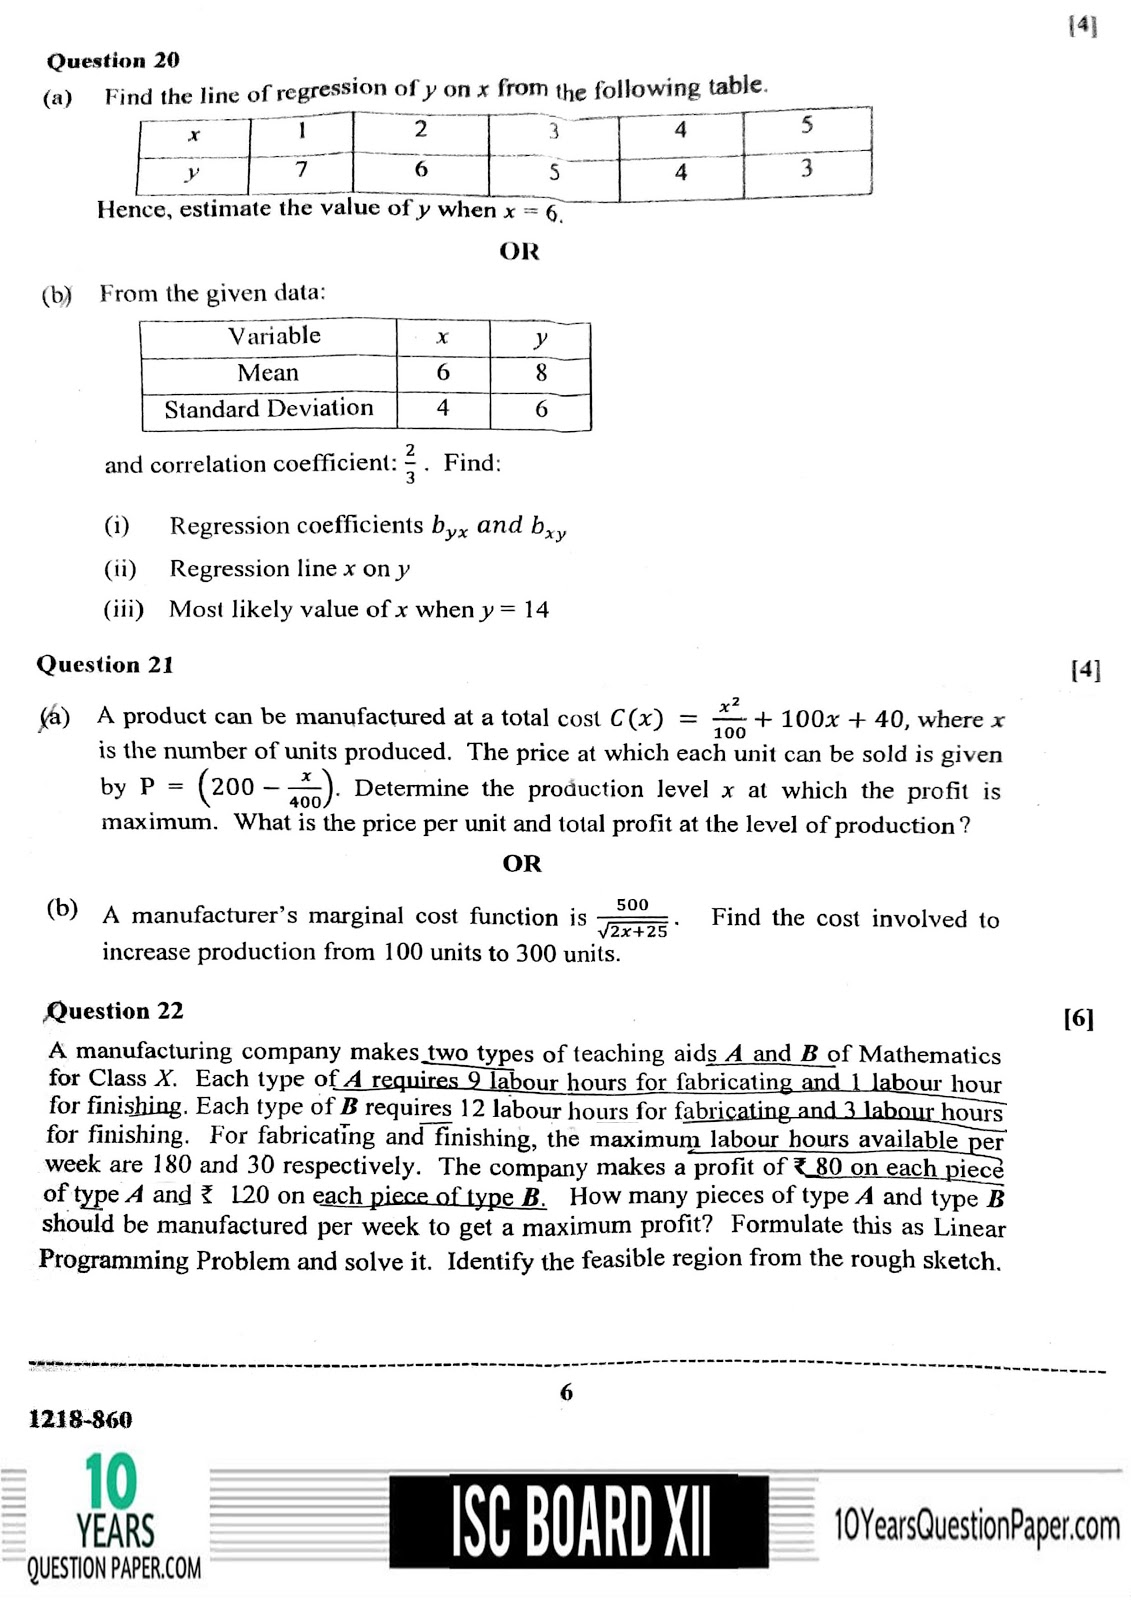 LATEST ECE Questions and Answers Pdf free Download